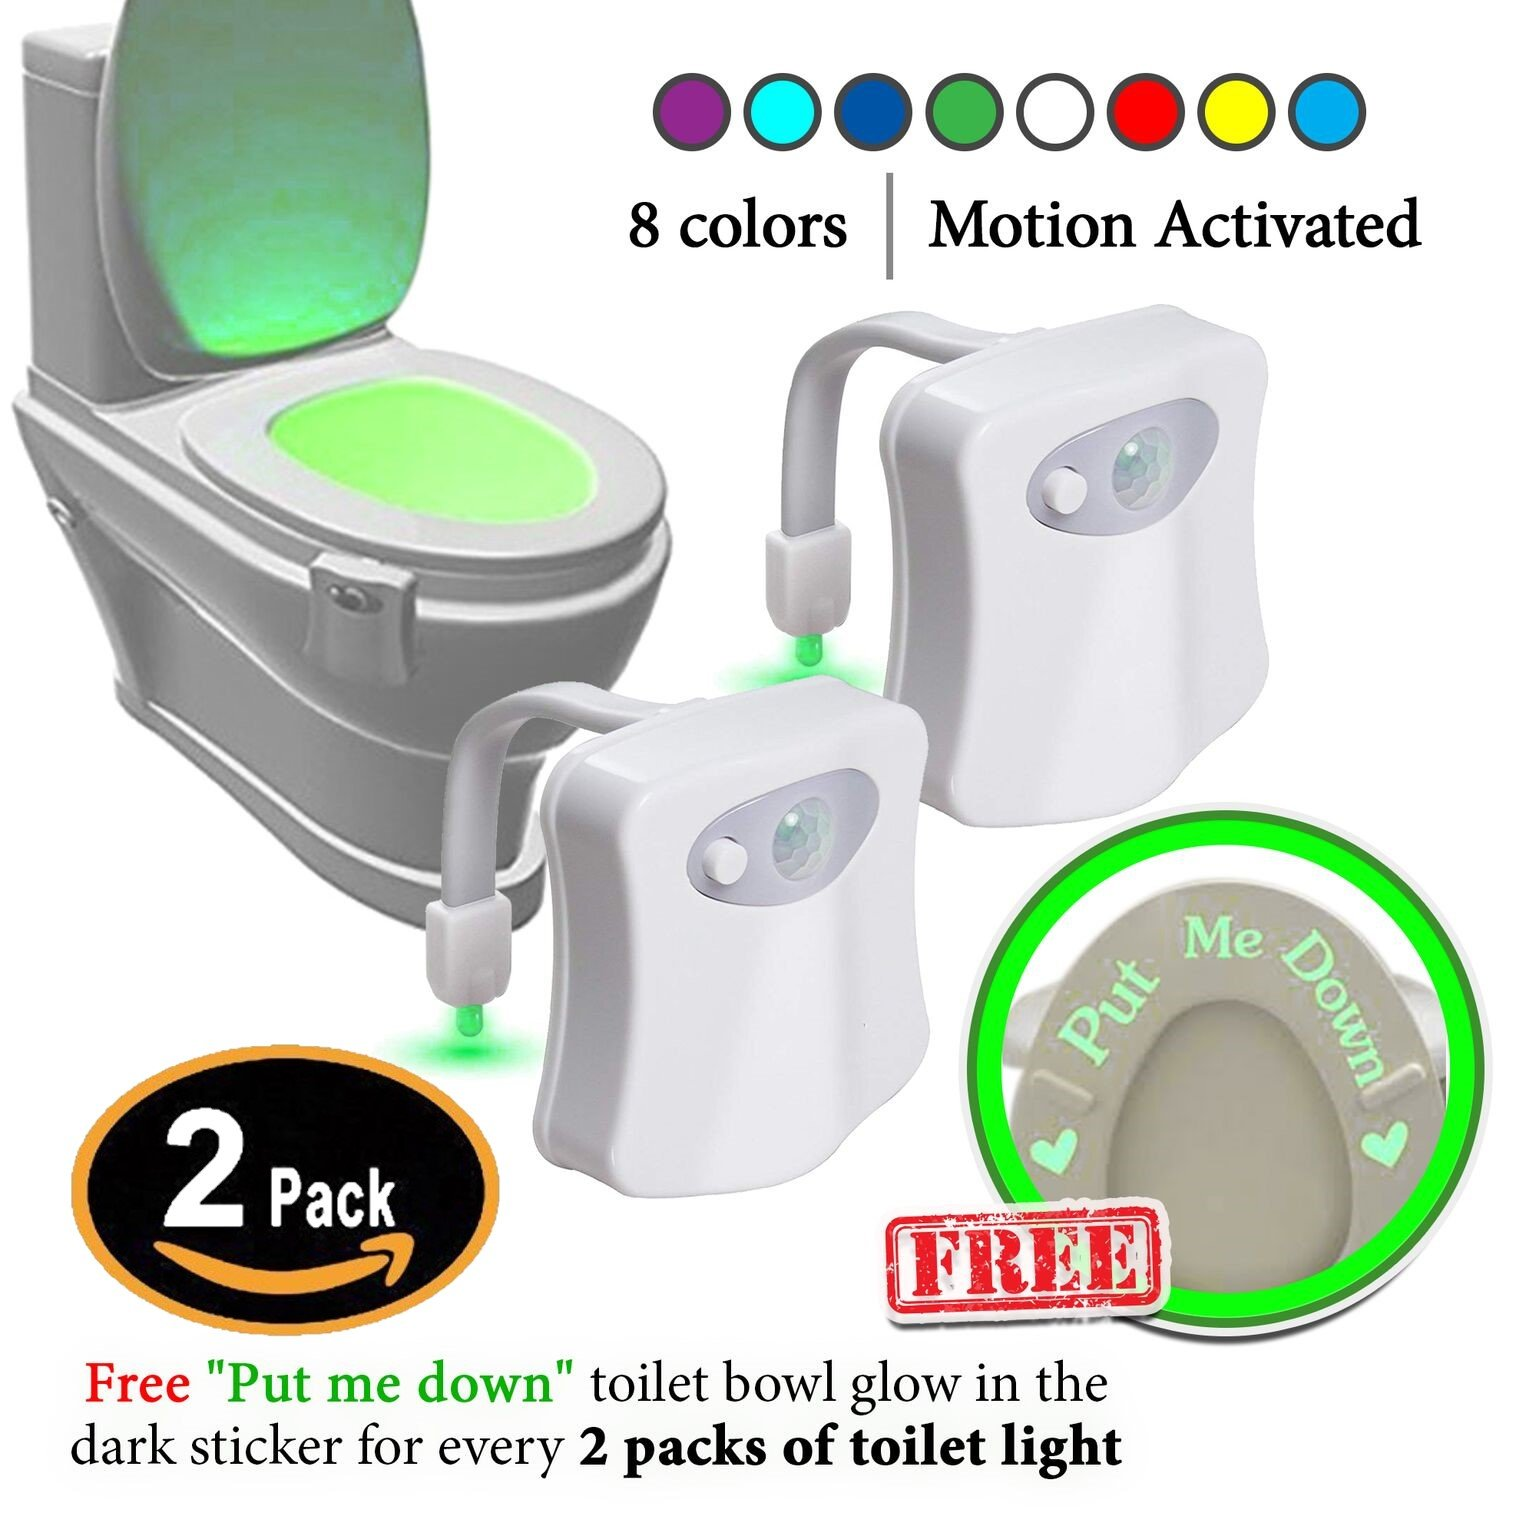 2 Pack Toilet Light with''Put me Down'' Sticker That Glows in The Dark. The Original Light Bowl, 8 Colors in 1 Device Motion Activated Night Light. Great Tool to Potty Train Toddlers